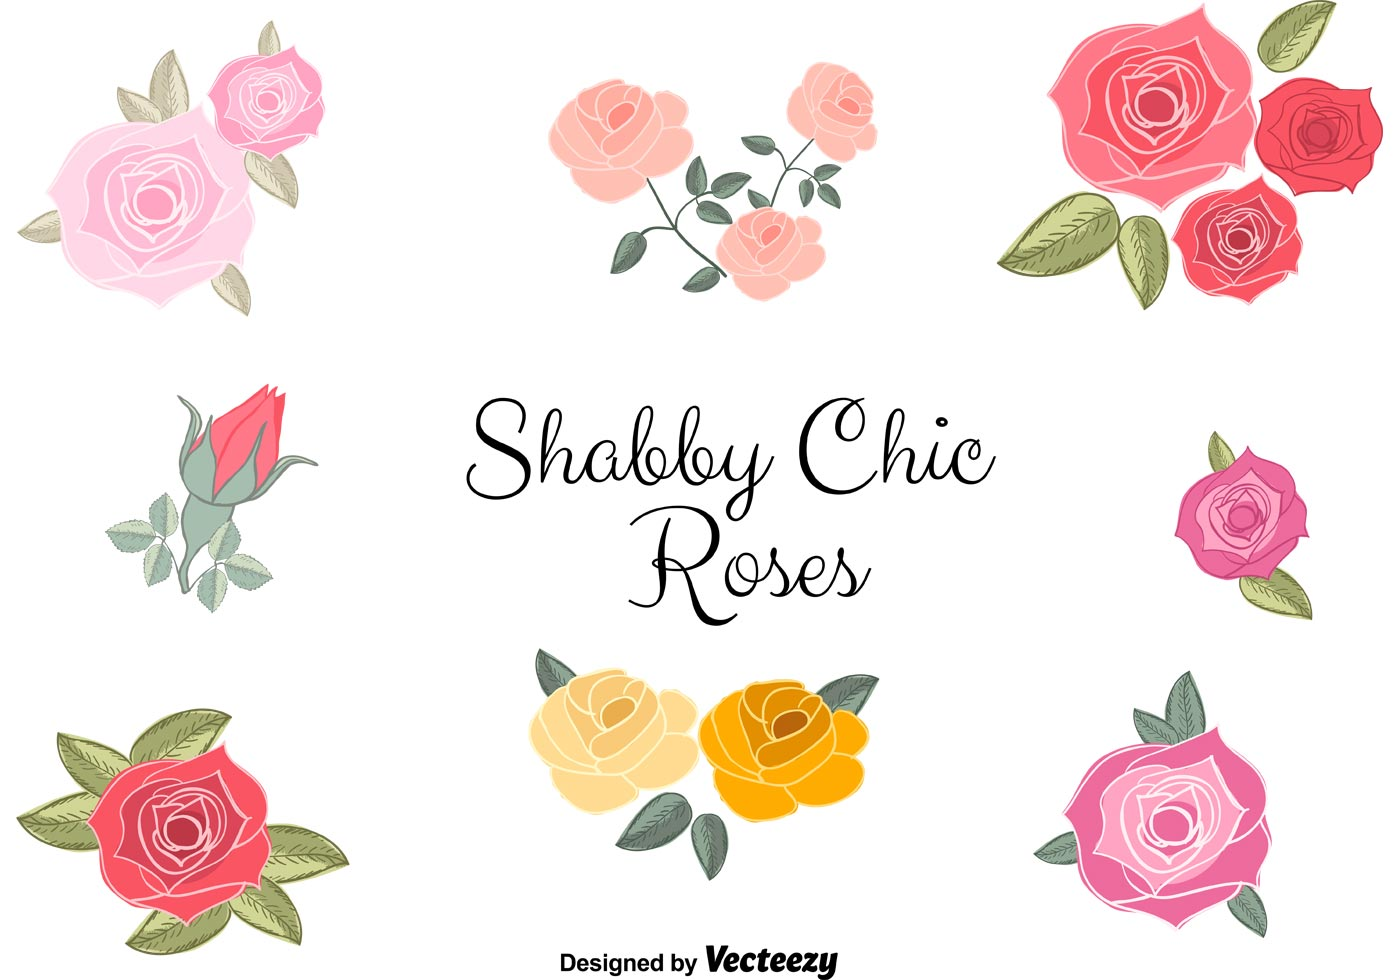 vector shabby chic roses download free vector art stock graphics images. Black Bedroom Furniture Sets. Home Design Ideas